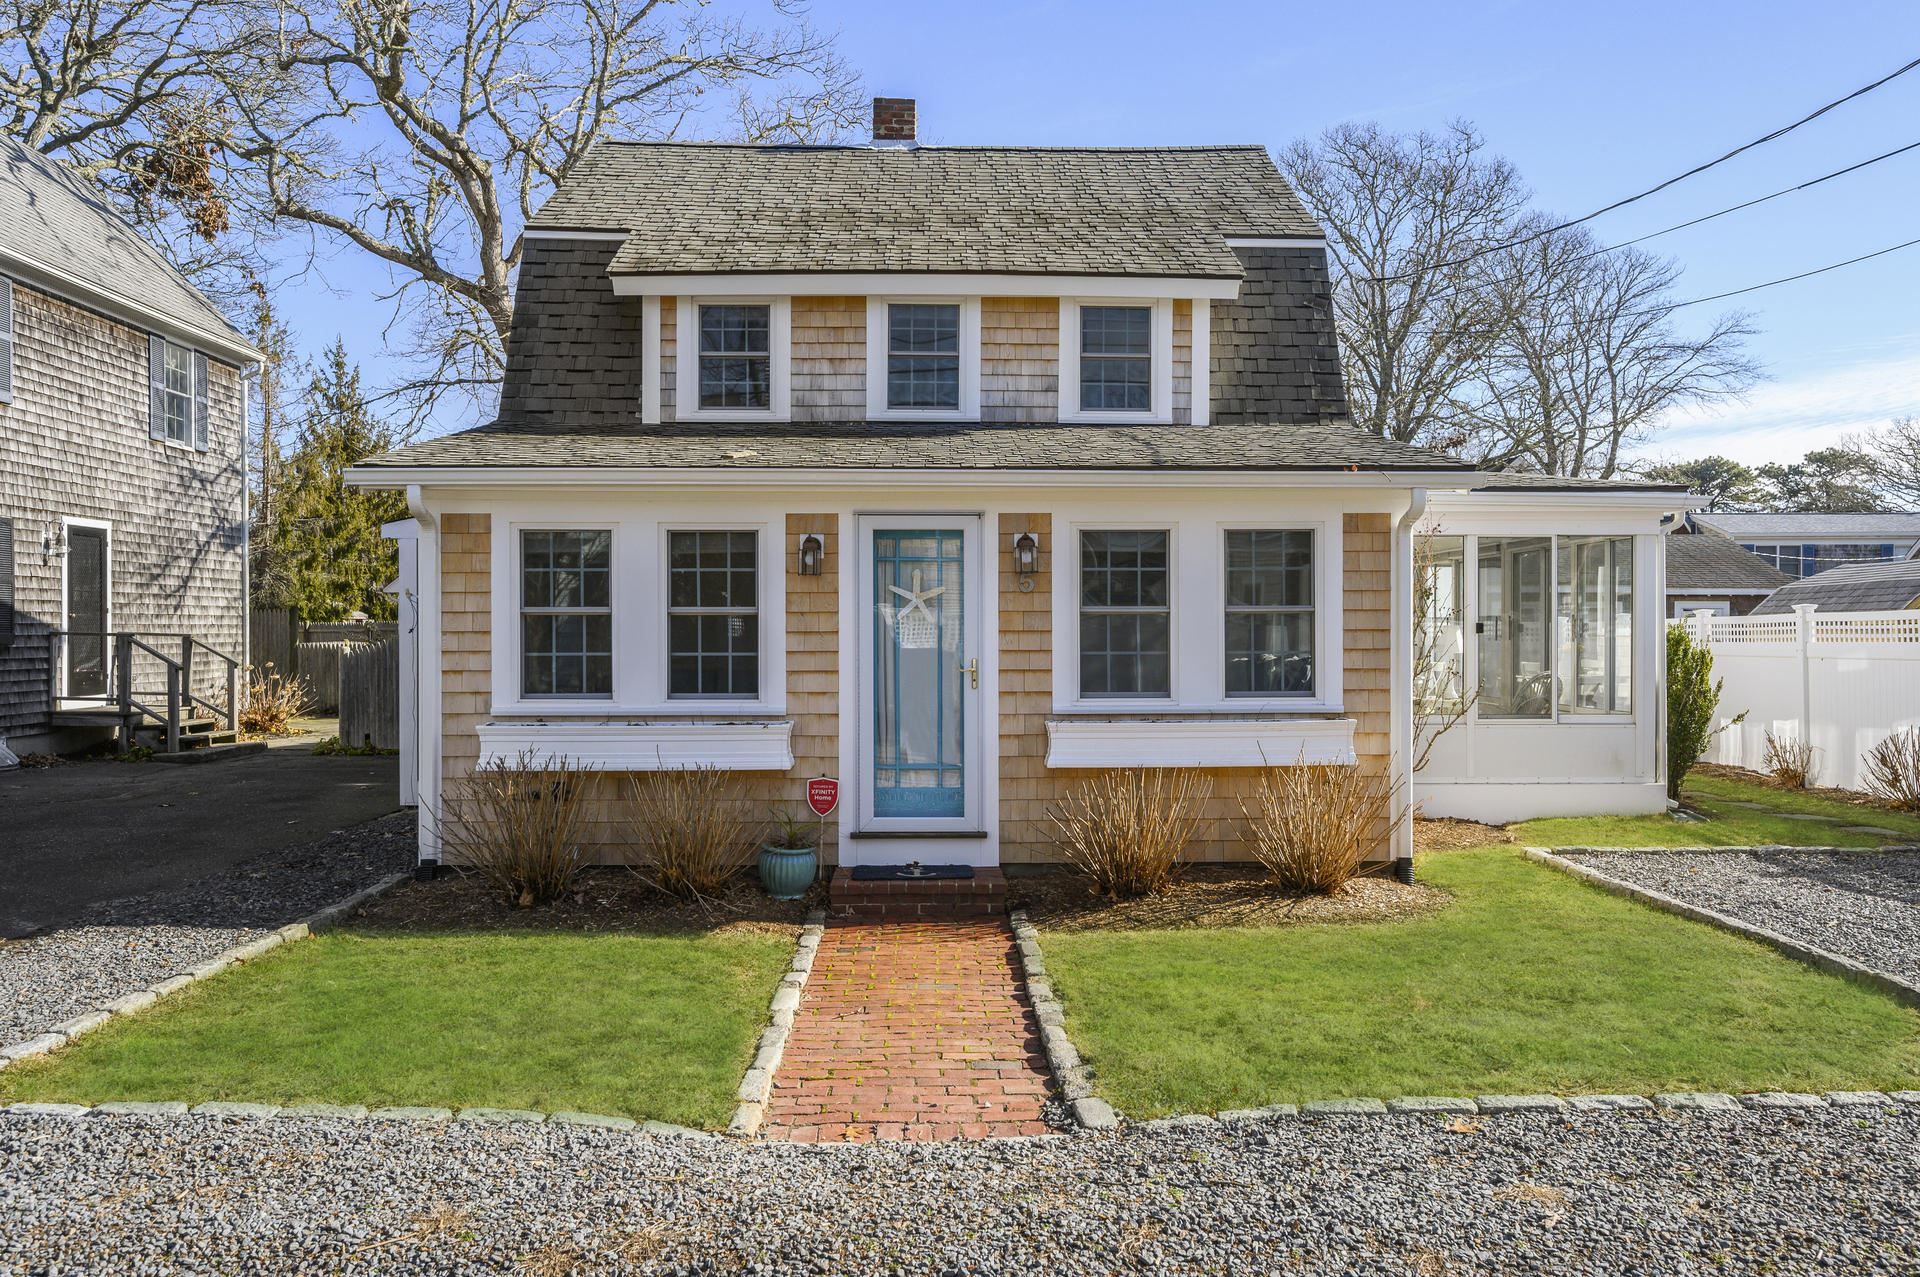 5 Essex Place, Harwich Port, MA 02646 - #: 22000500